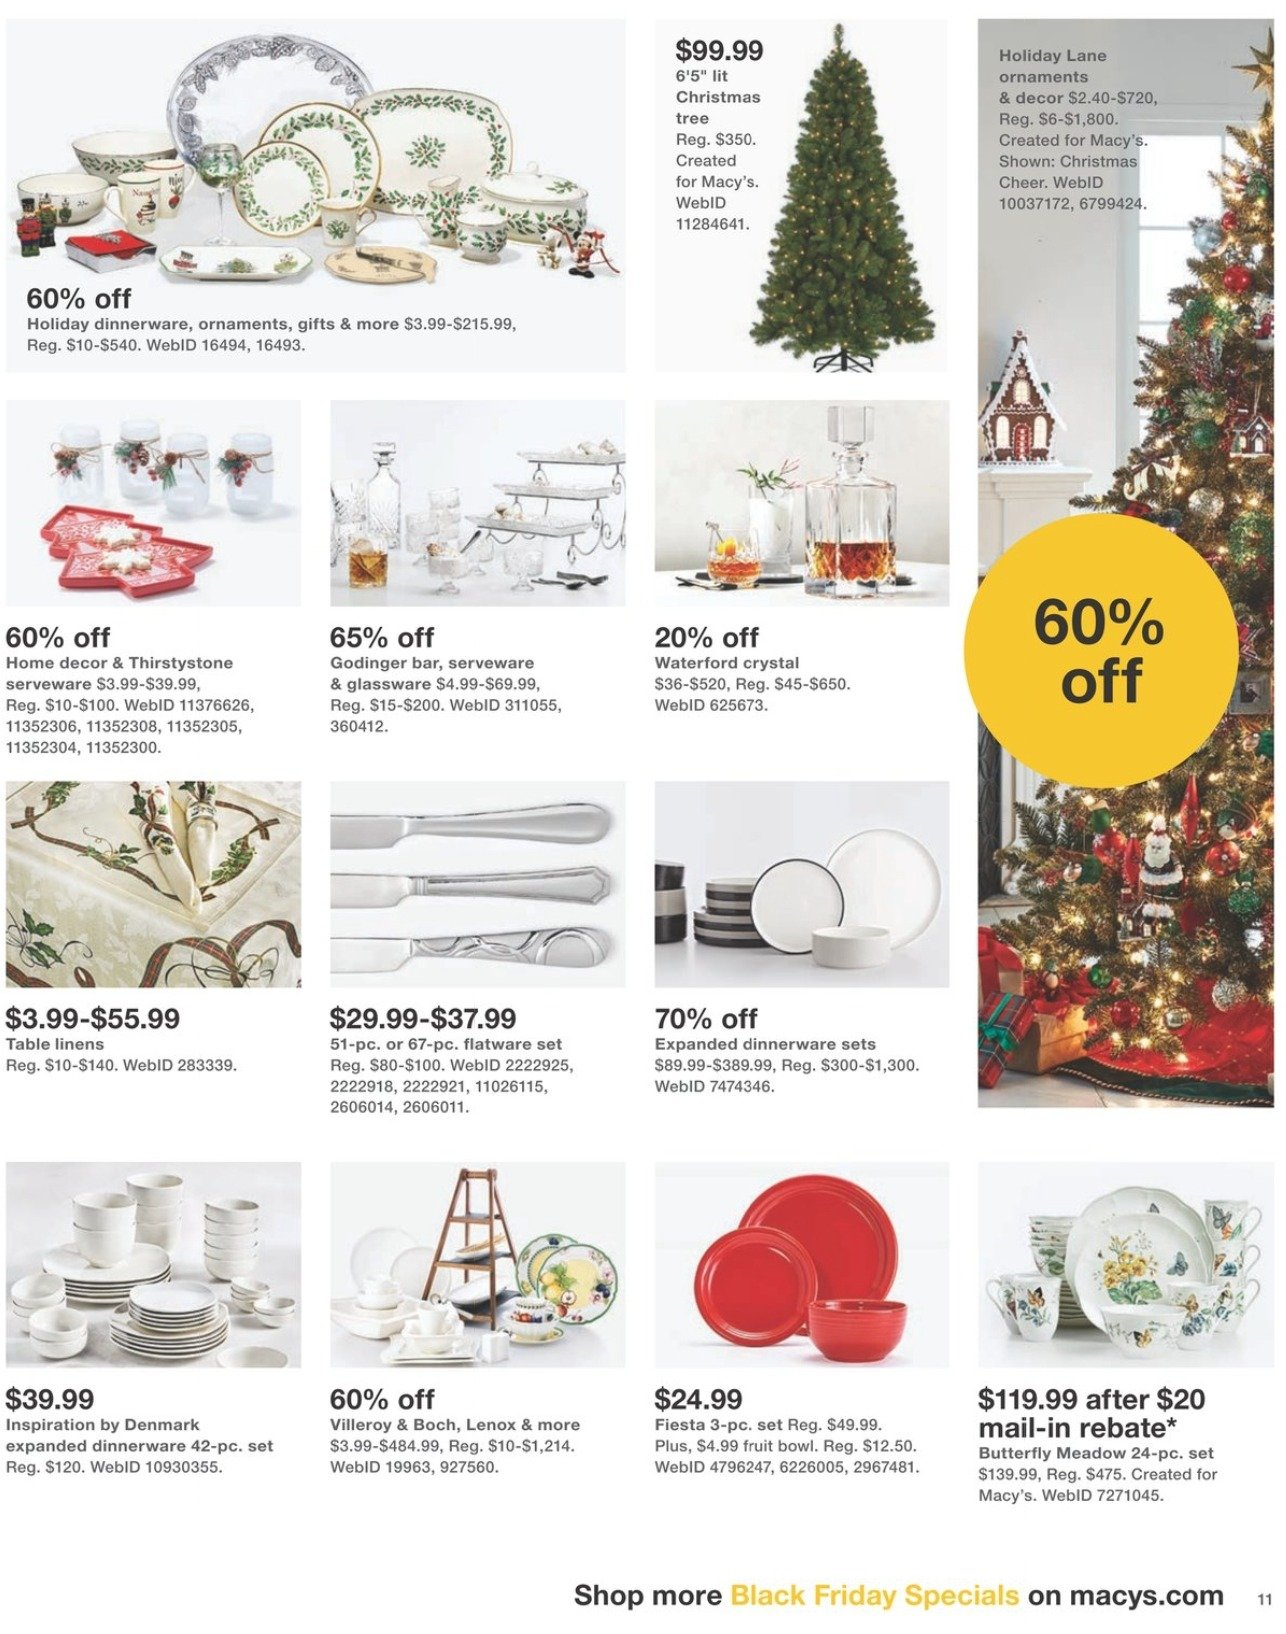 Macy's Black Friday 2020 Page 11